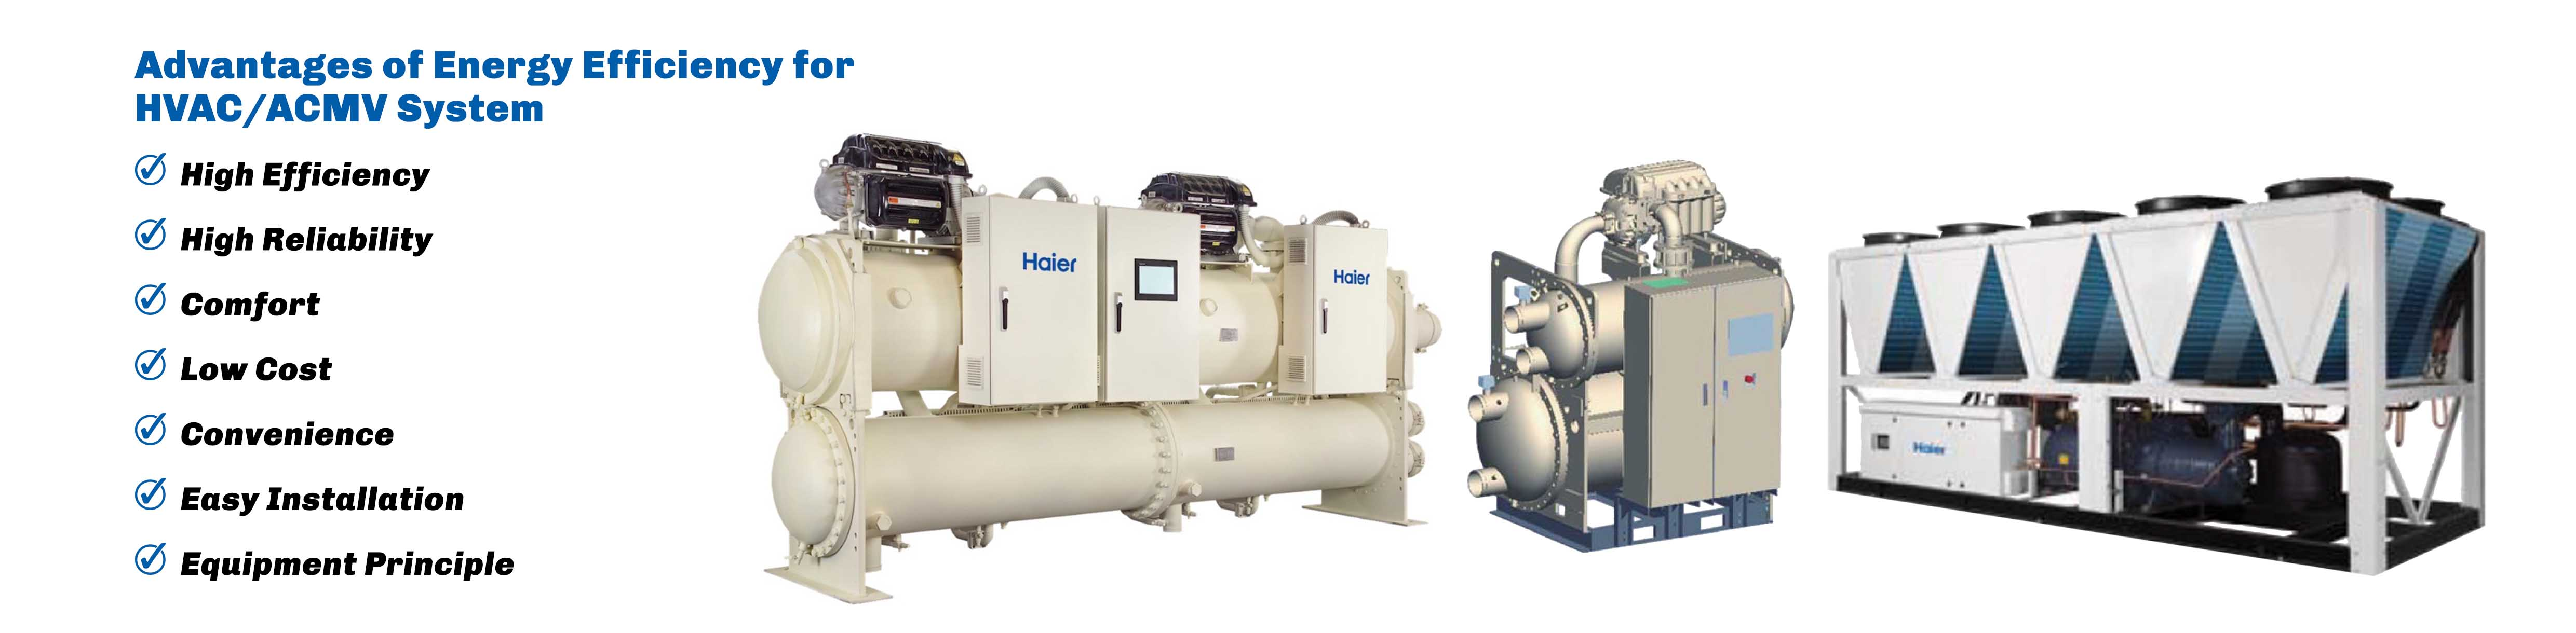 Energy efficient hvac acmv system jana tanmia for What is the most efficient heating system